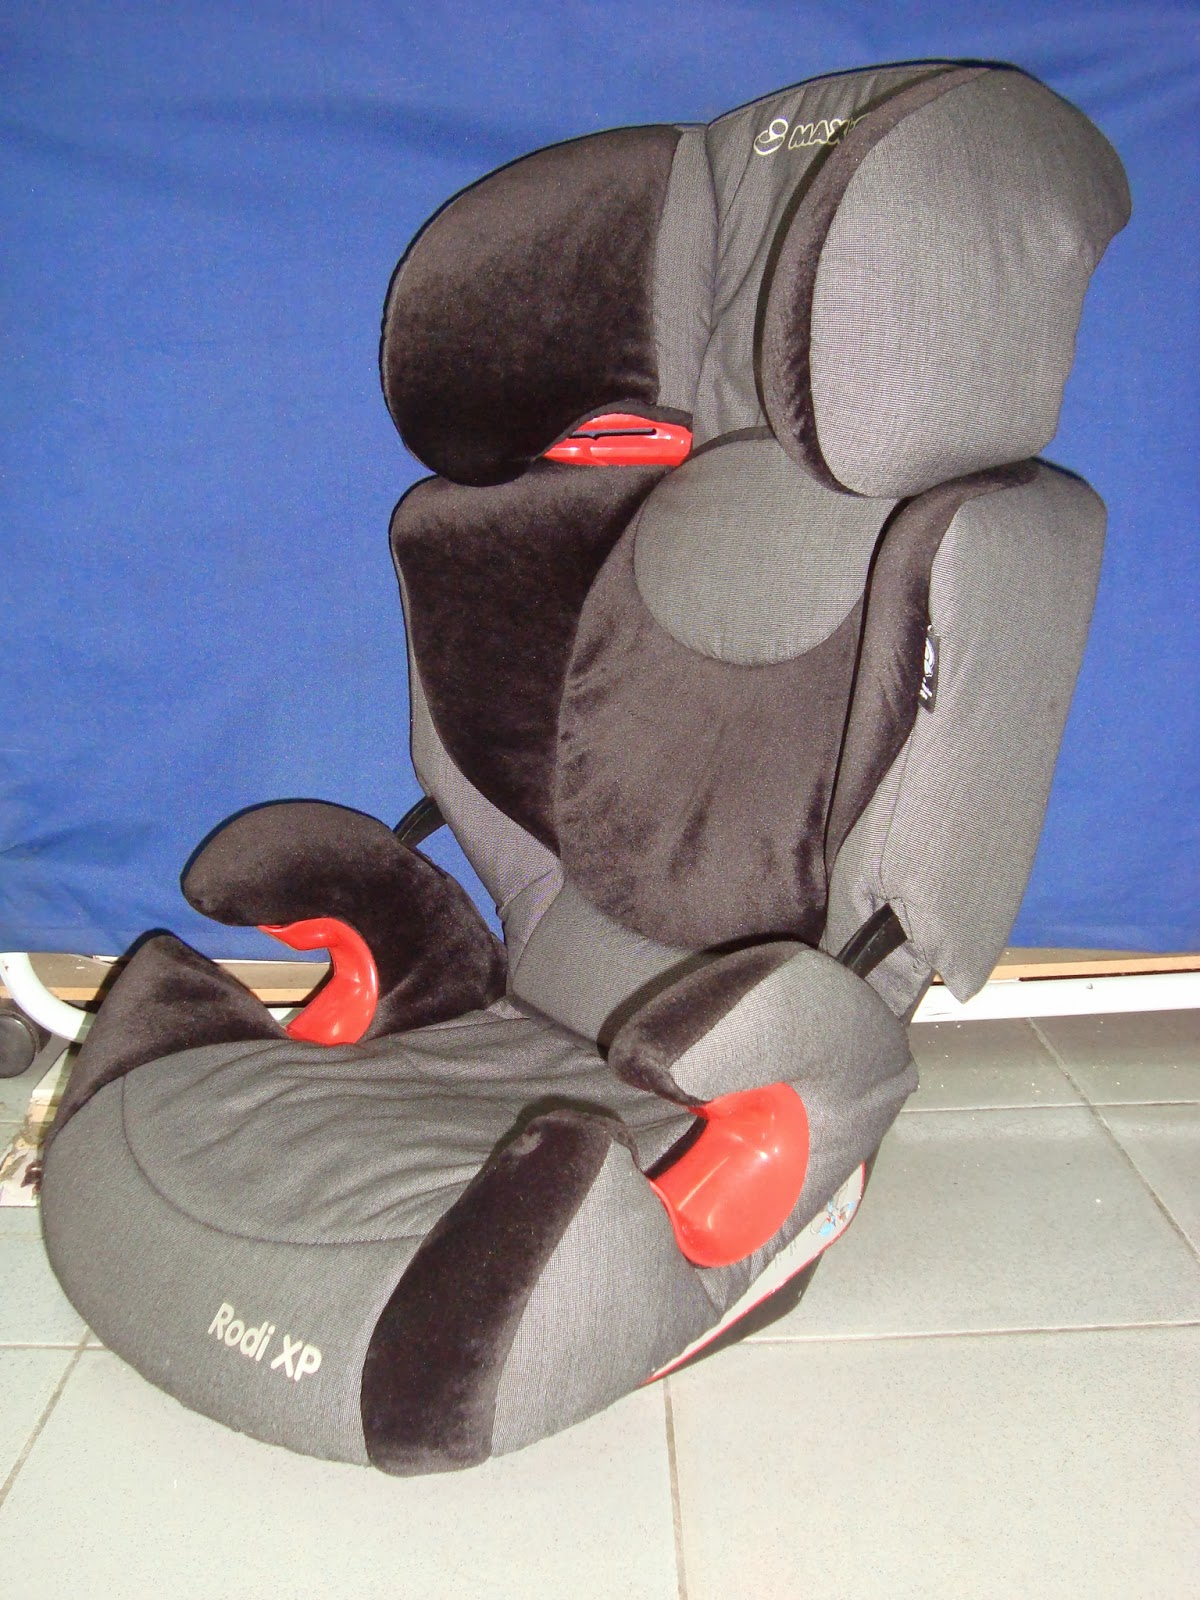 kedai bundle toys thetottoys maxi cosi rodi xp booster seat. Black Bedroom Furniture Sets. Home Design Ideas